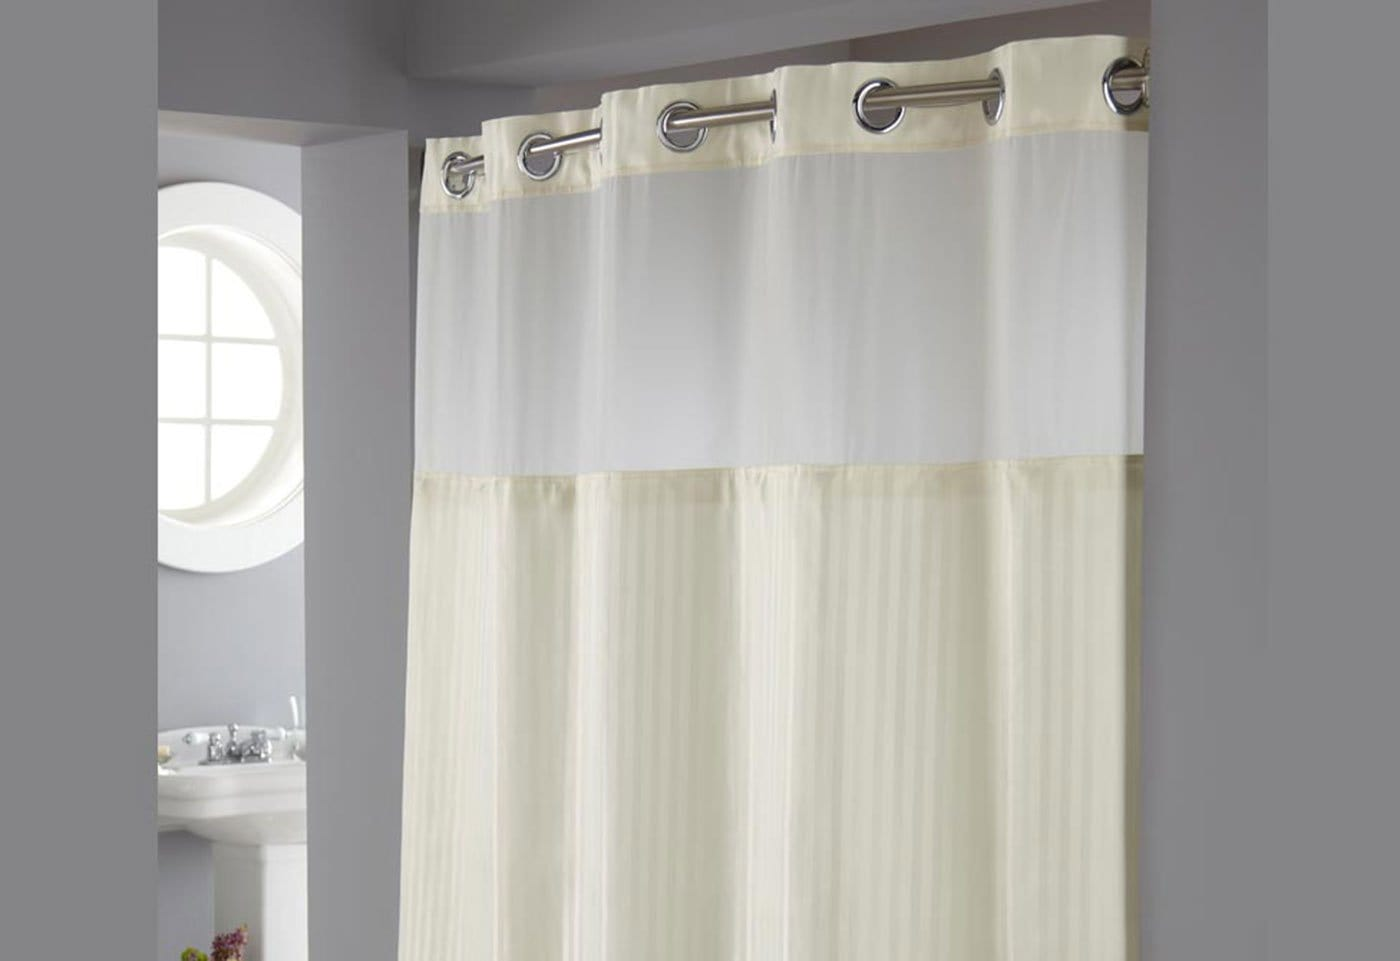 Hookless® Classic Herringbone Shower Curtain Includes Snap On/Off Replaceable Liner - Beige